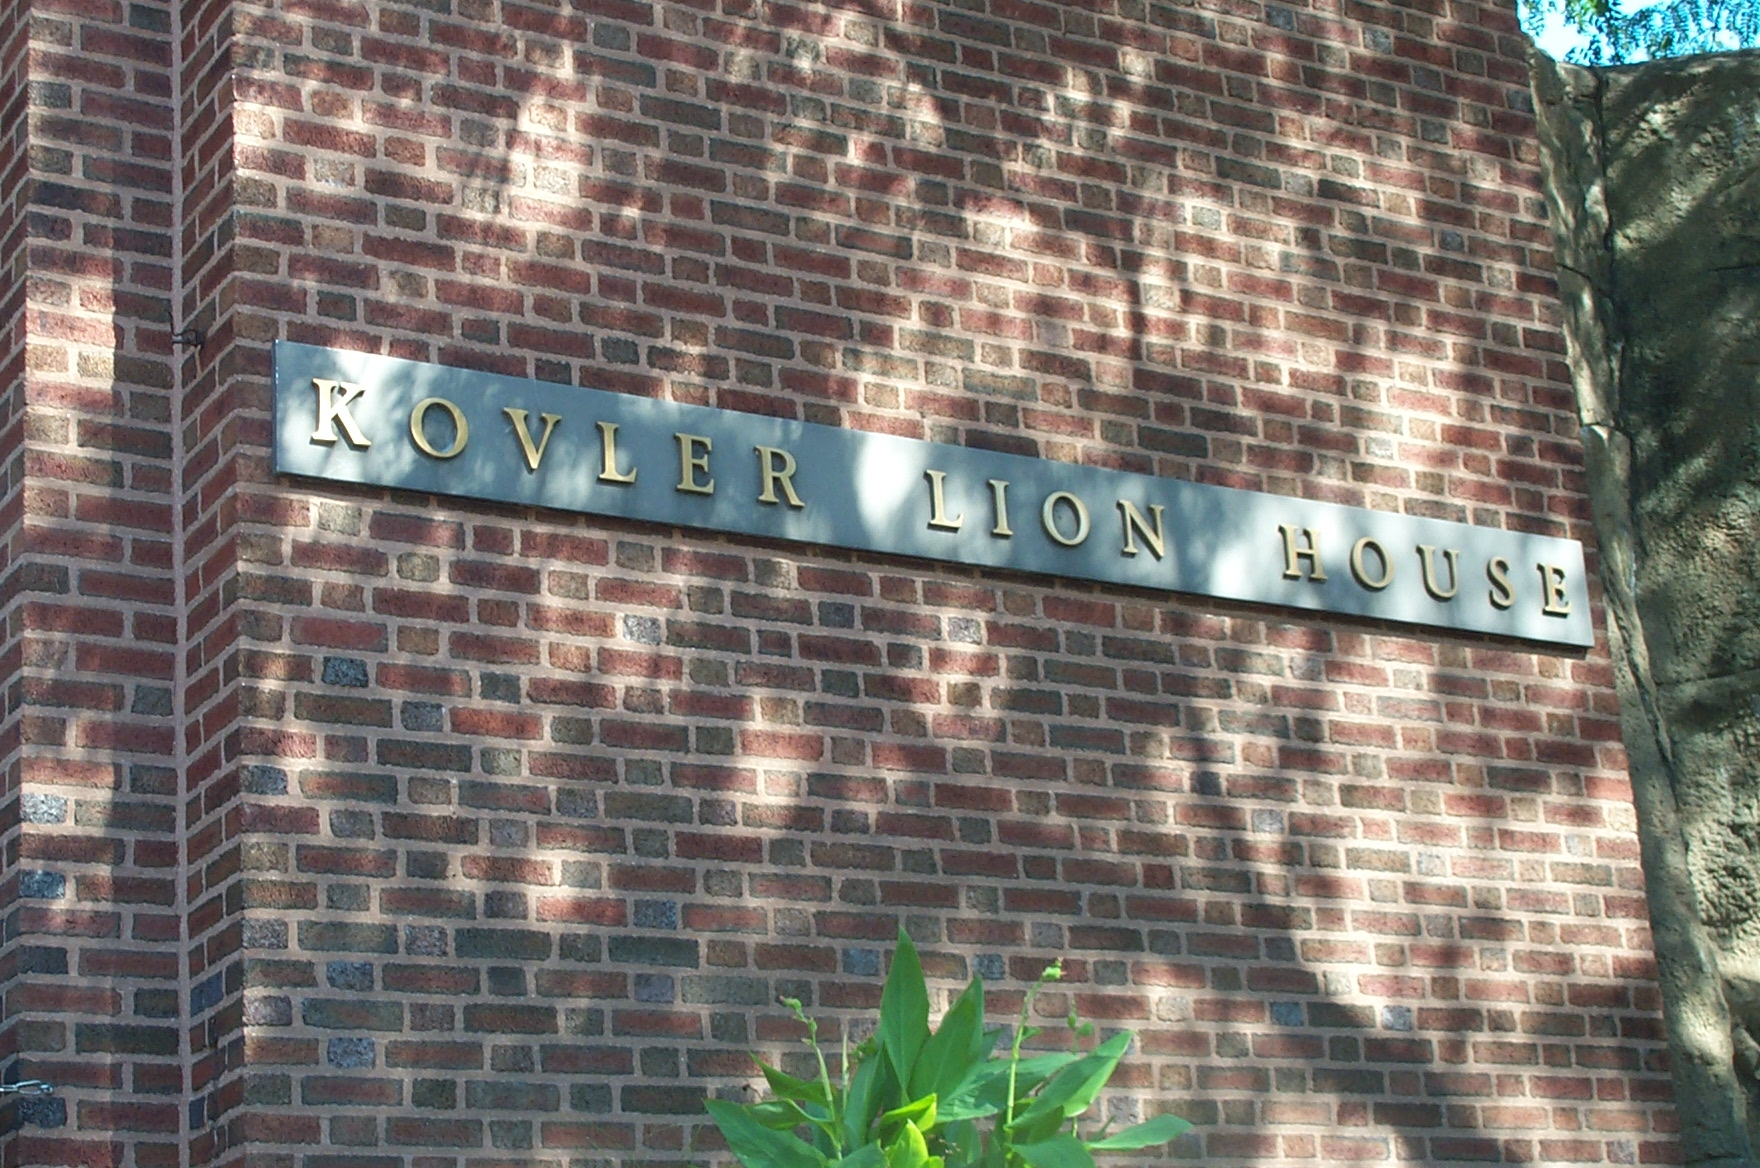 Close up of sign in front of the Kovler Lion House.